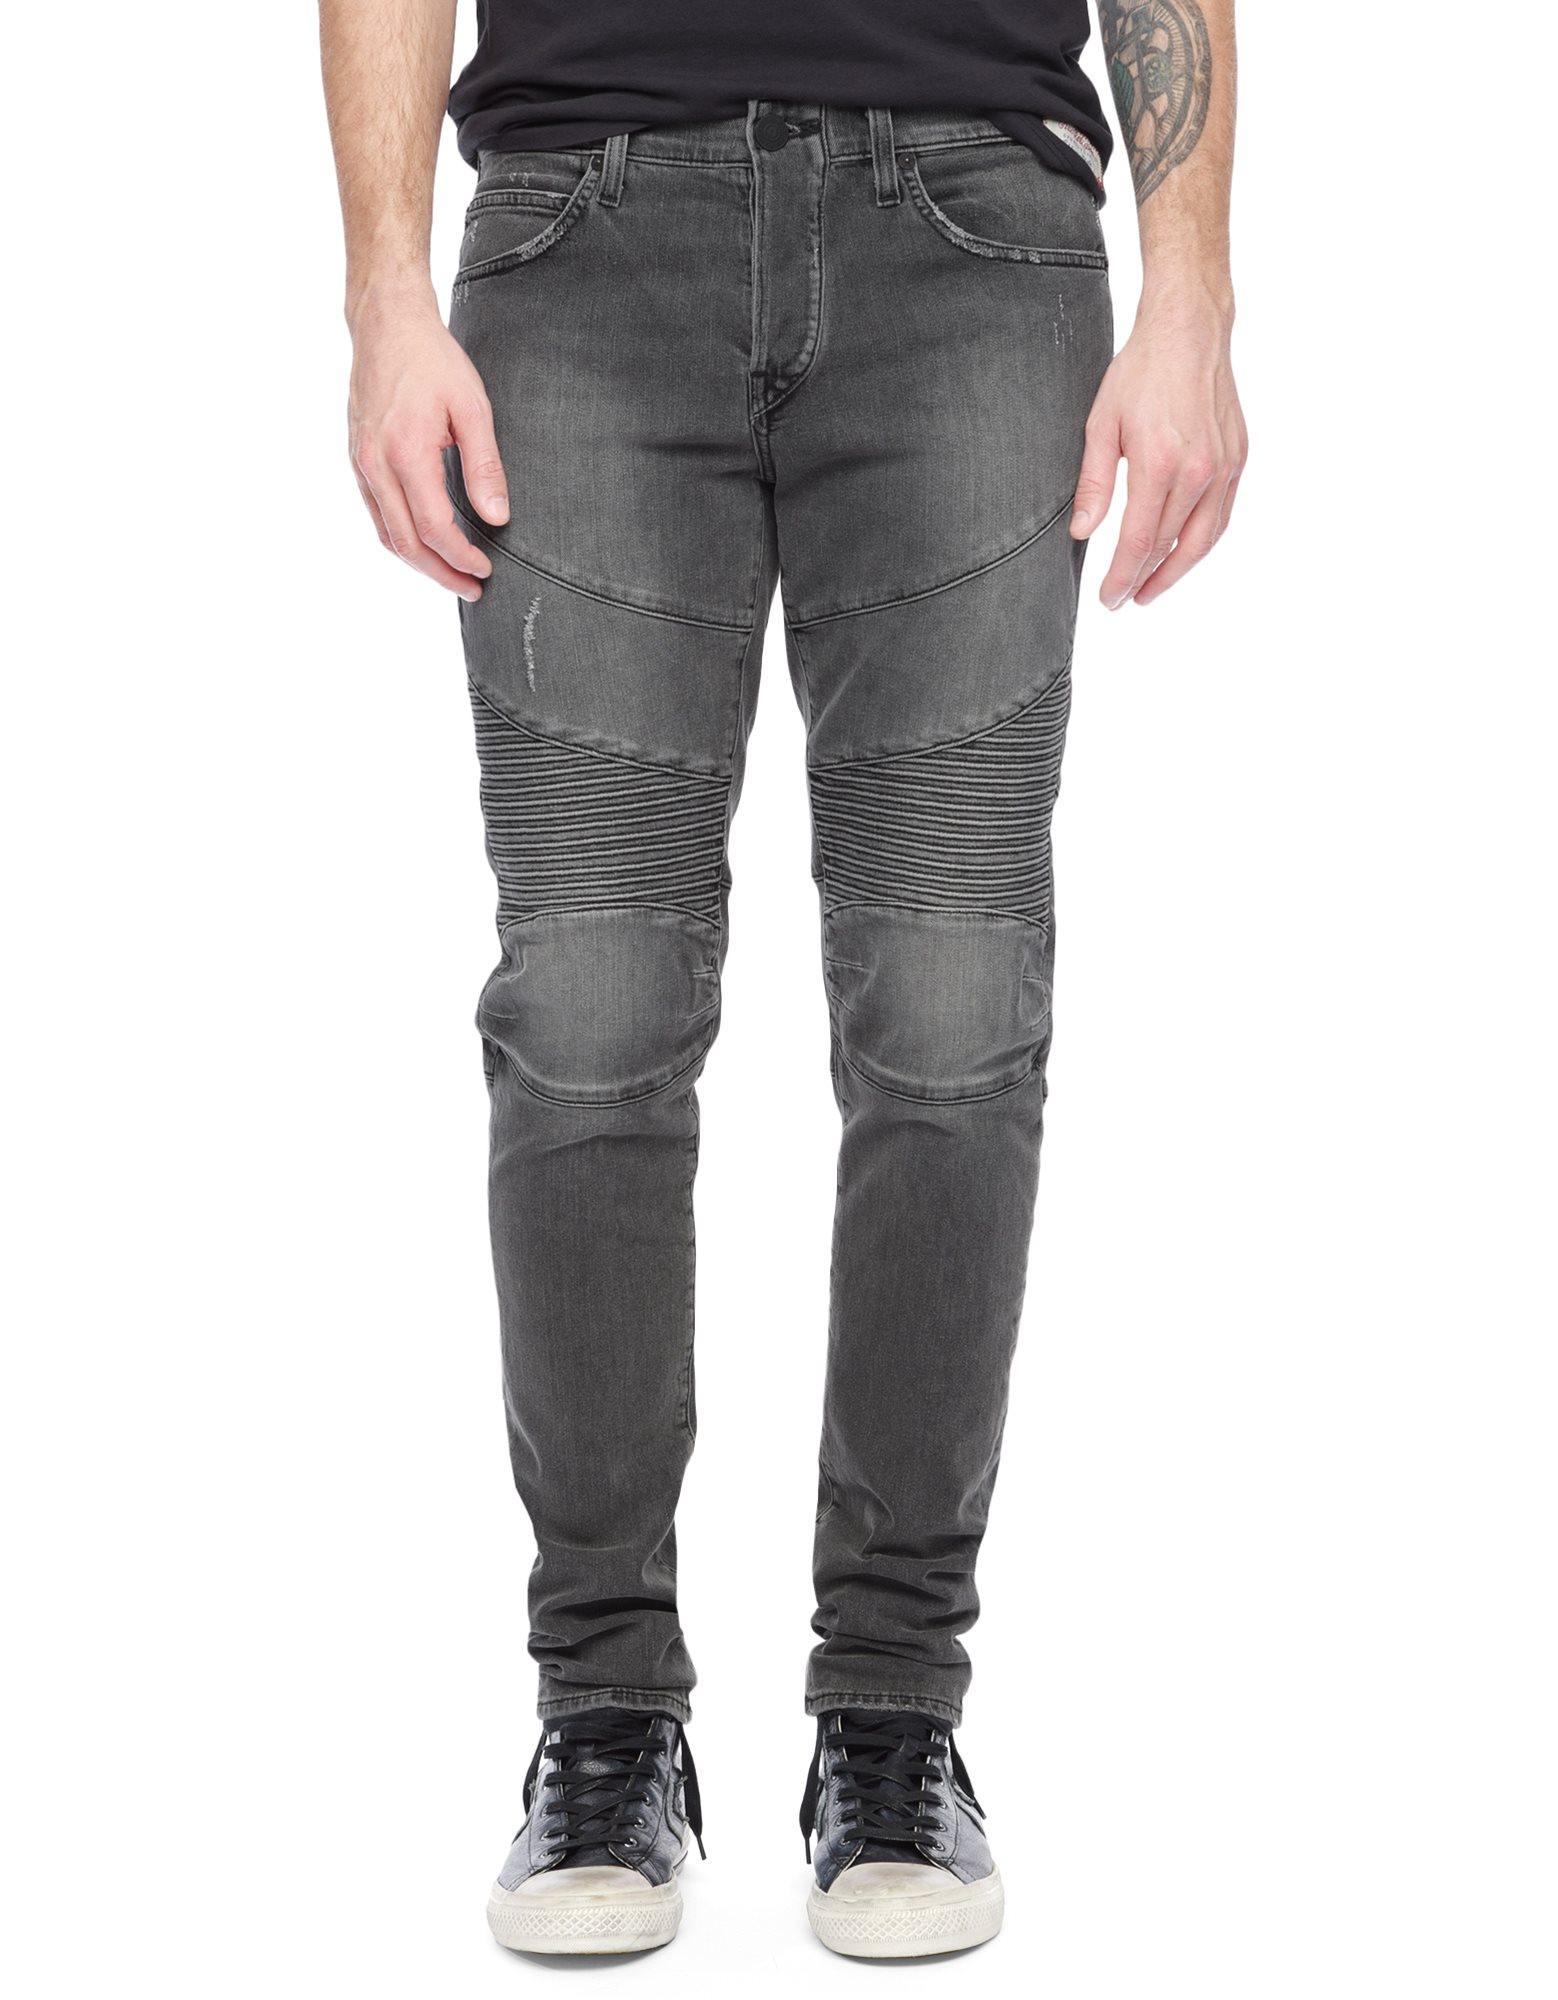 True Religion Geno Relaxed Fit Slim Jeans For Men In Gray For Men Lyst